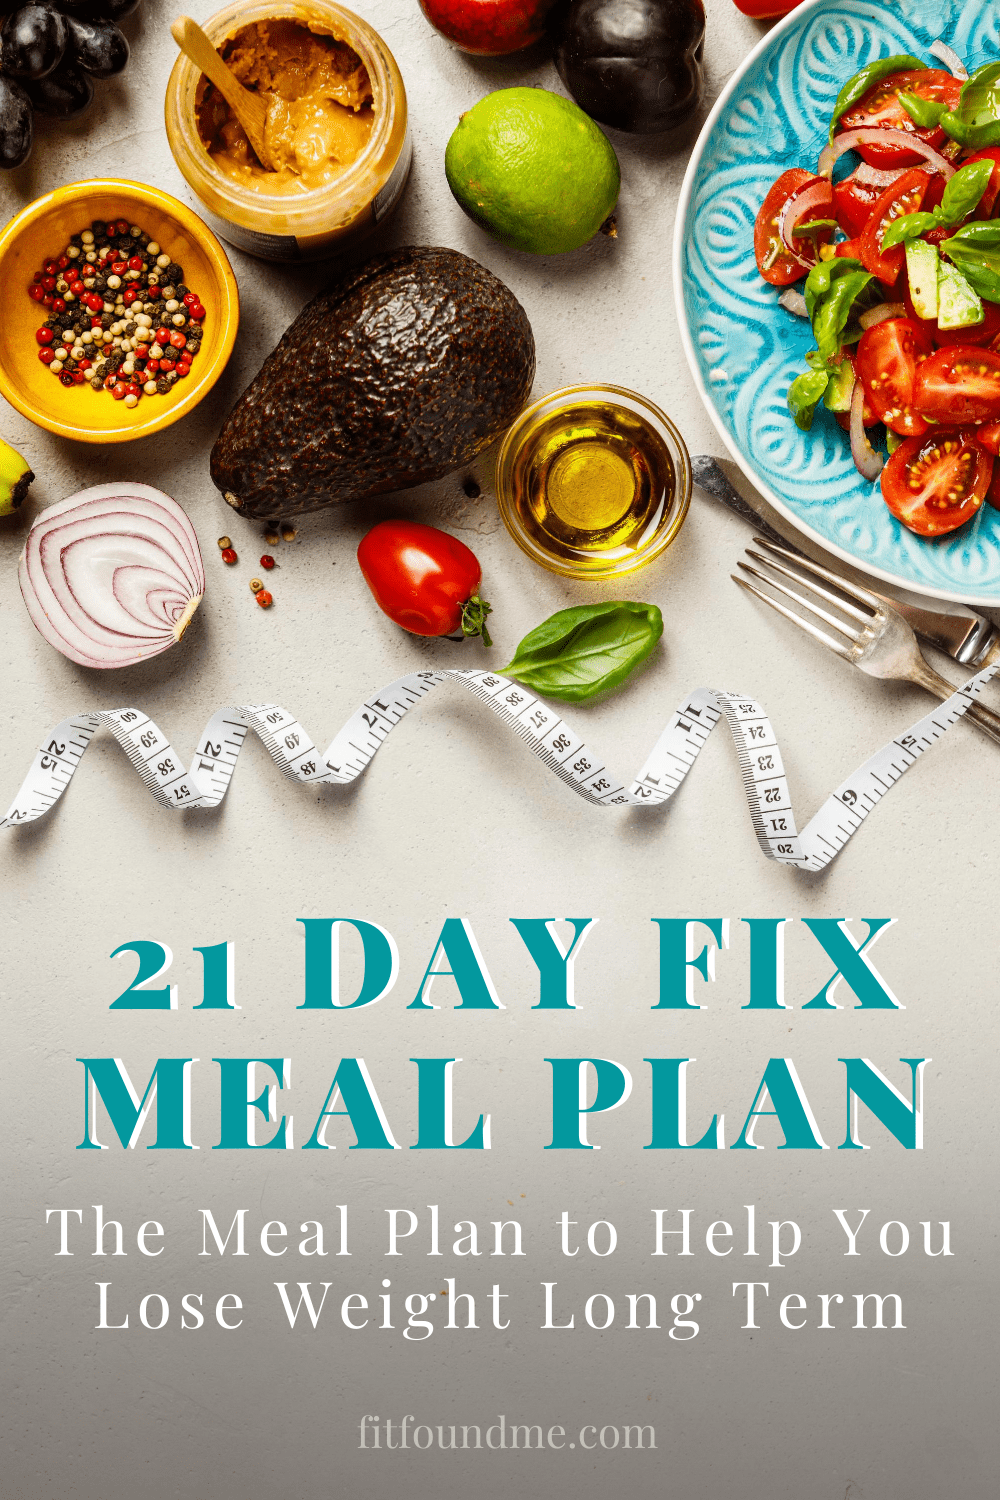 Is the 21 day fix meal plan right for you? Get the information you need, along with the resources needed to get started with the portion fix plan here. Print tracking sheets, shopping lists, get a phone app, recipes and more!  via @fitfoundme